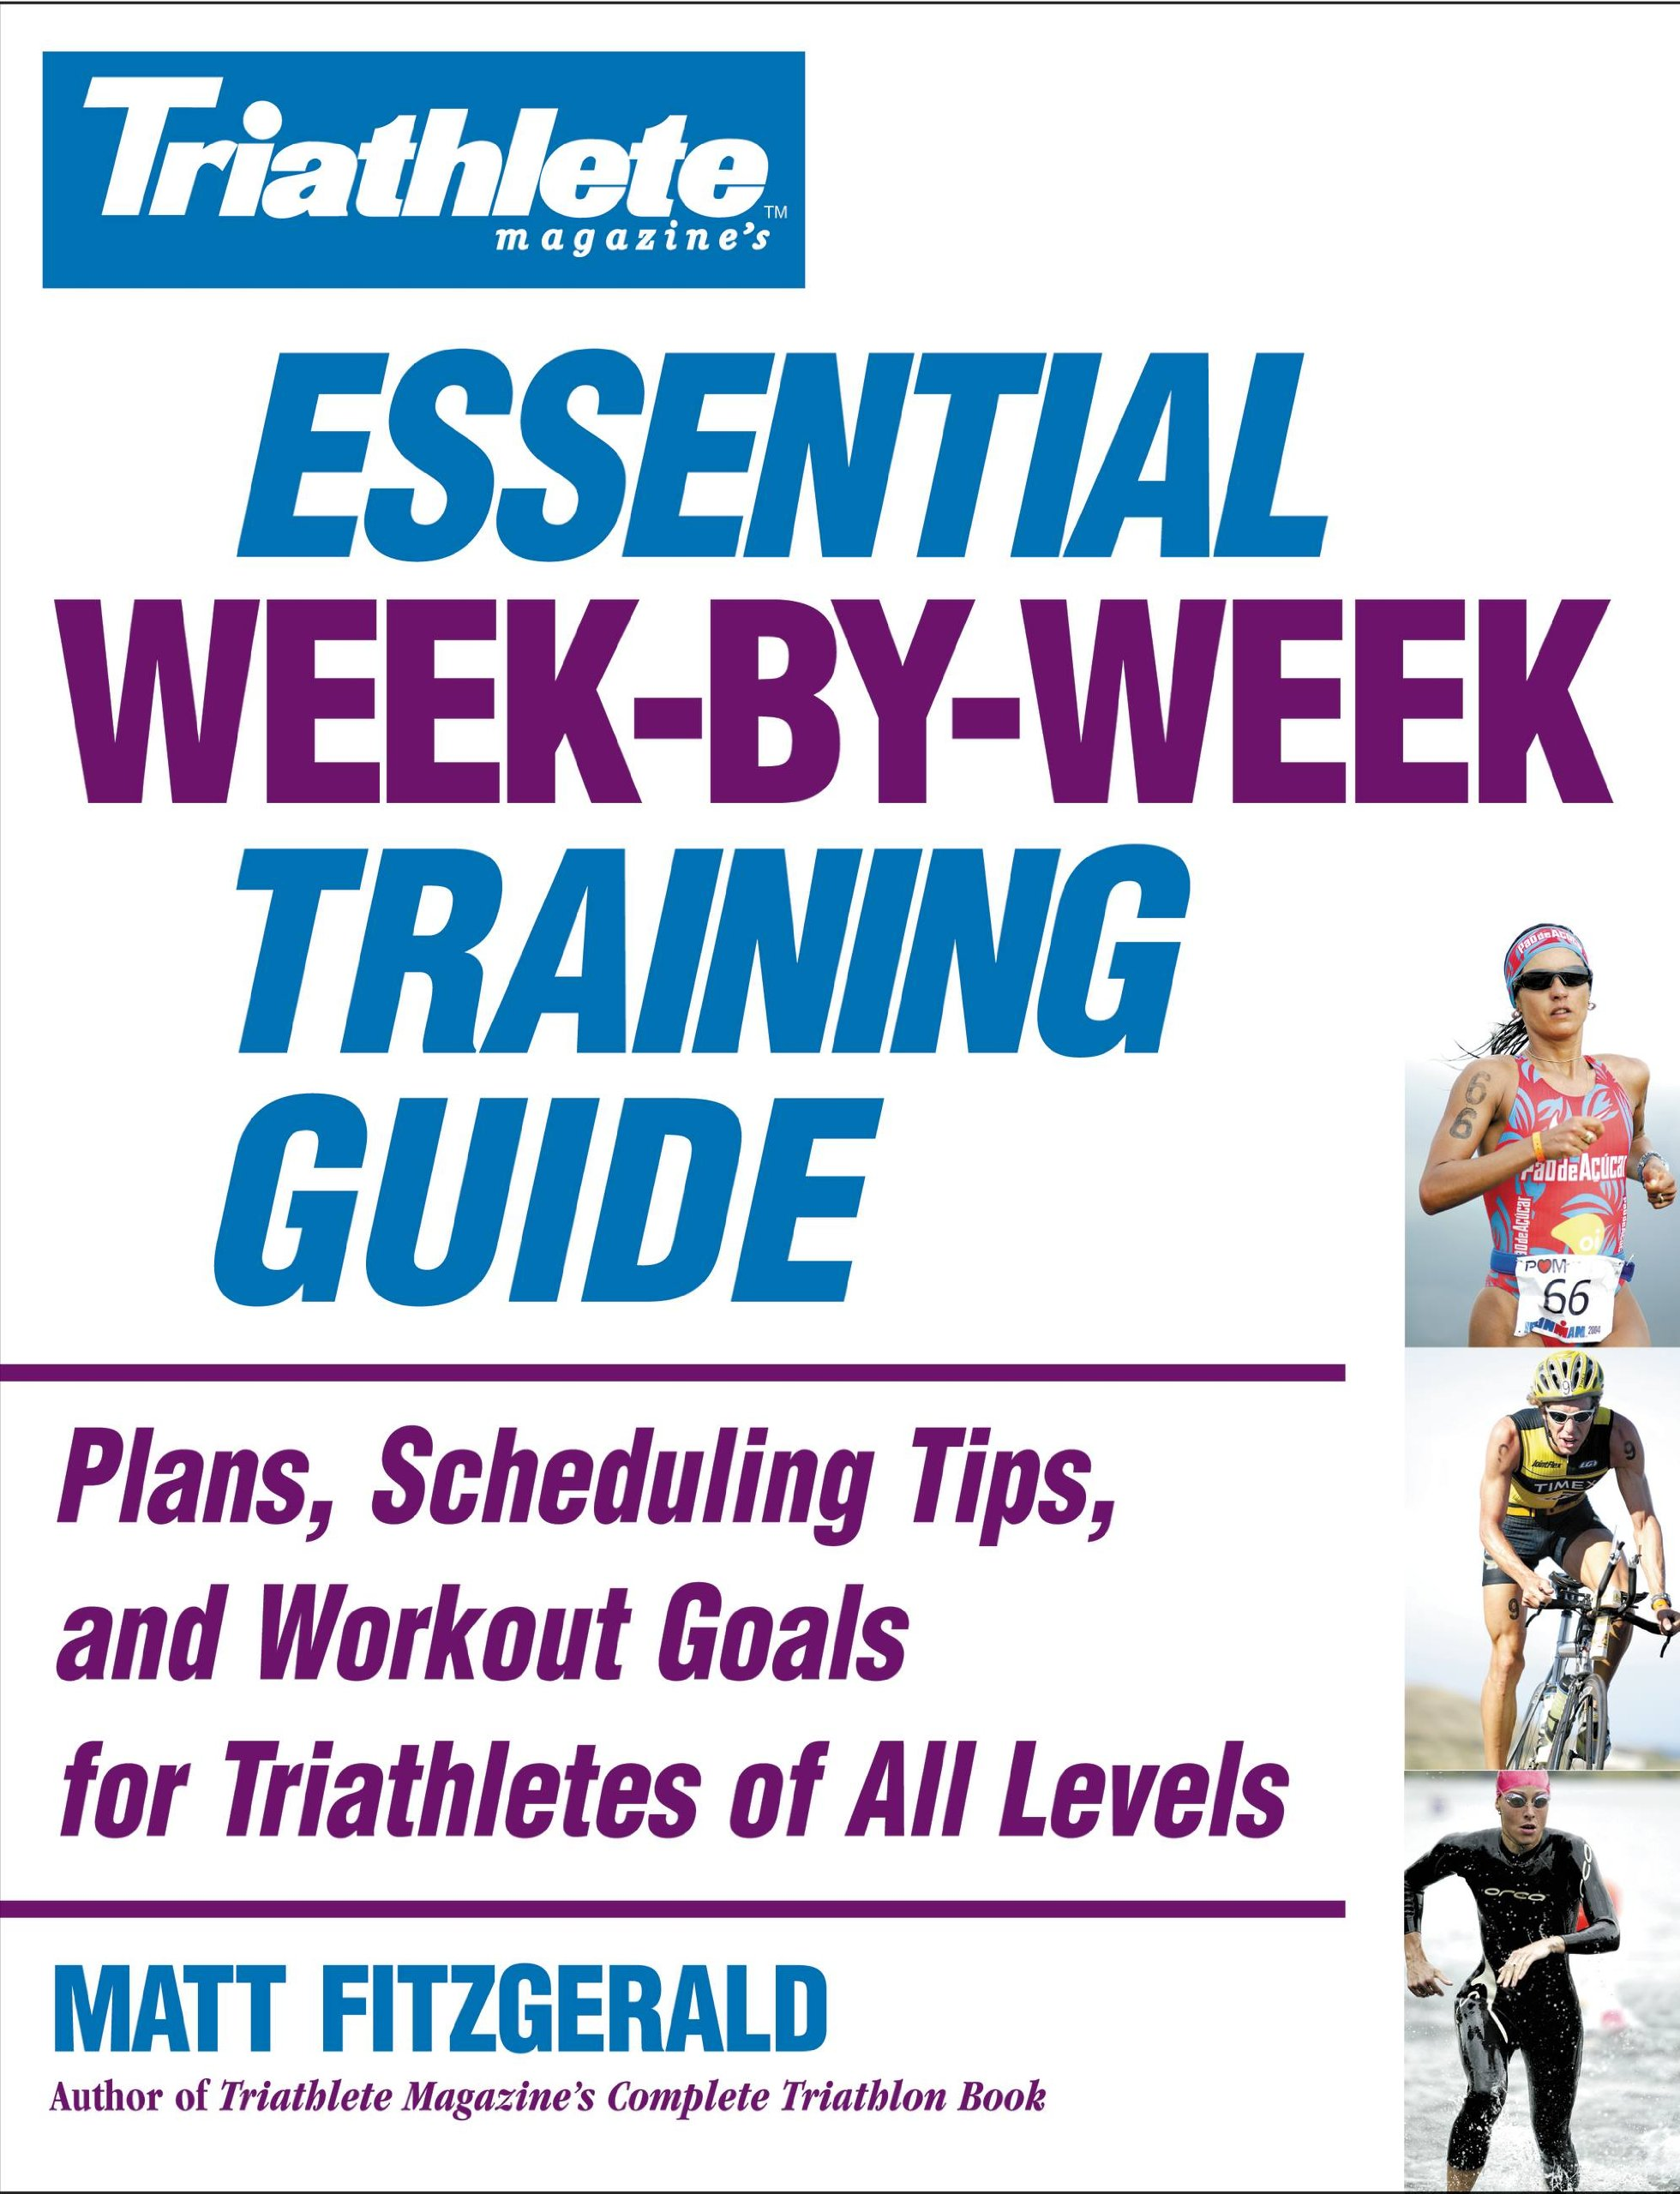 Image OfTriathlete Magazine's Essential Week-by-Week Training Guide: Plans, Scheduling Tips, And Workout Goals For Triathletes Of ...